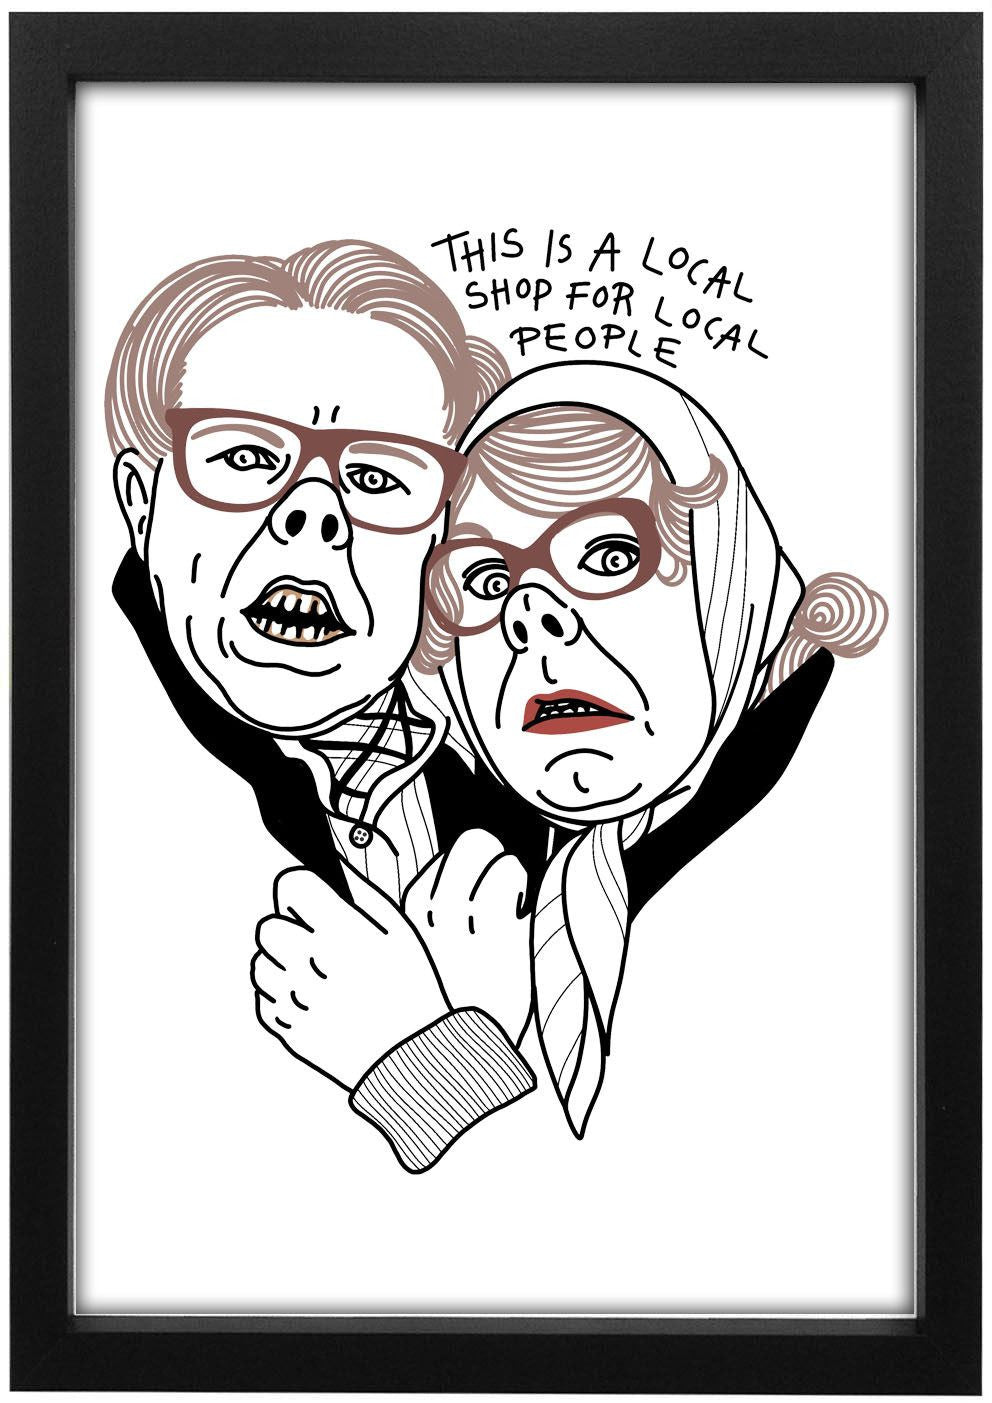 League Of Gentlemen - Local Shop For Local People Art Print - Jiggle Apparel